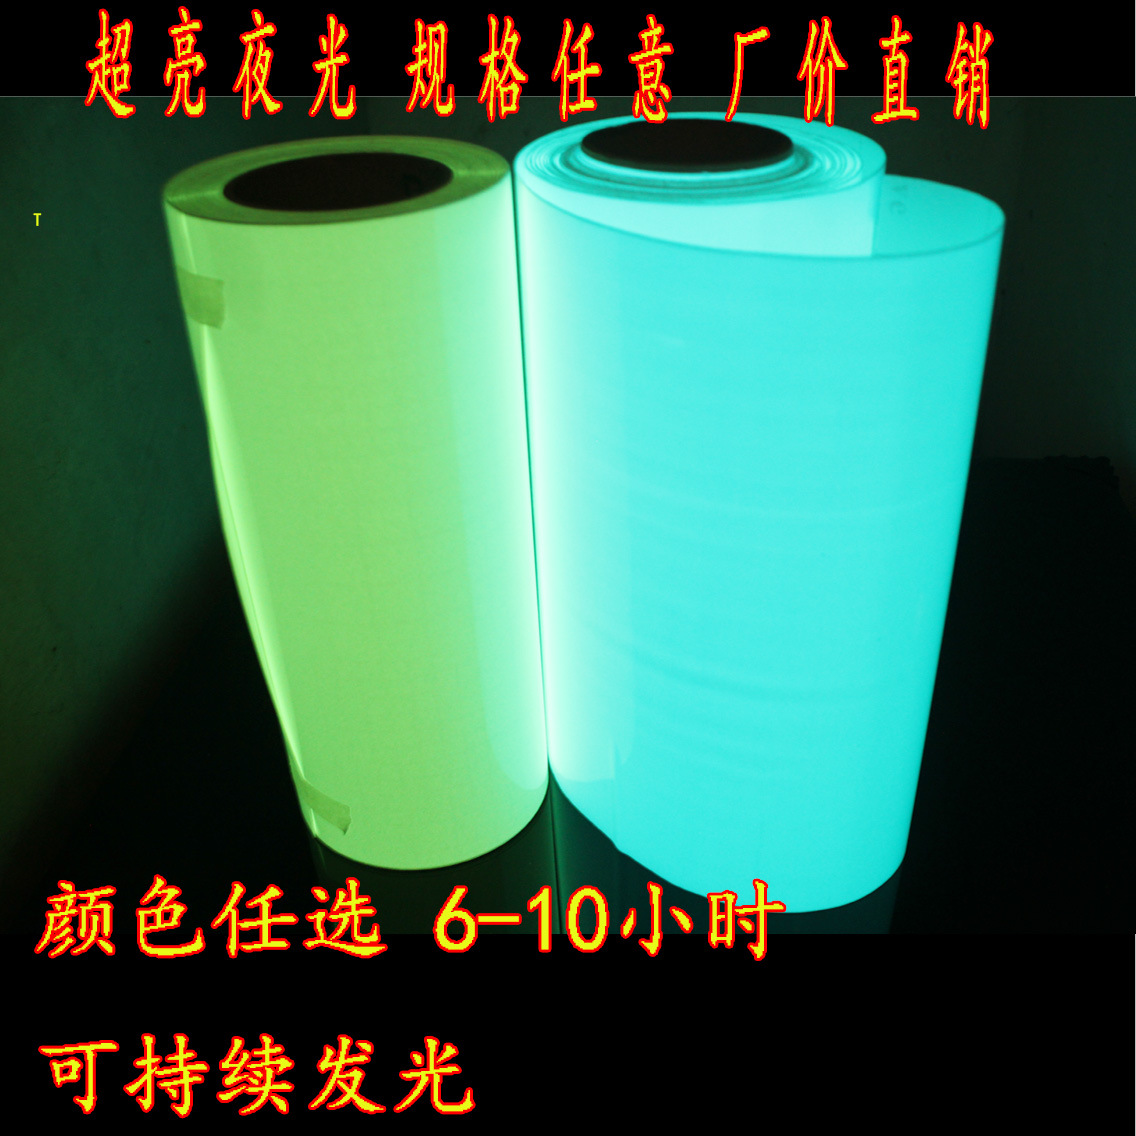 Online Pet Luminous Protector Lettering Spray-print PVC Luminous Protector Luminescent Film Luminous Protector Storage Luminesce